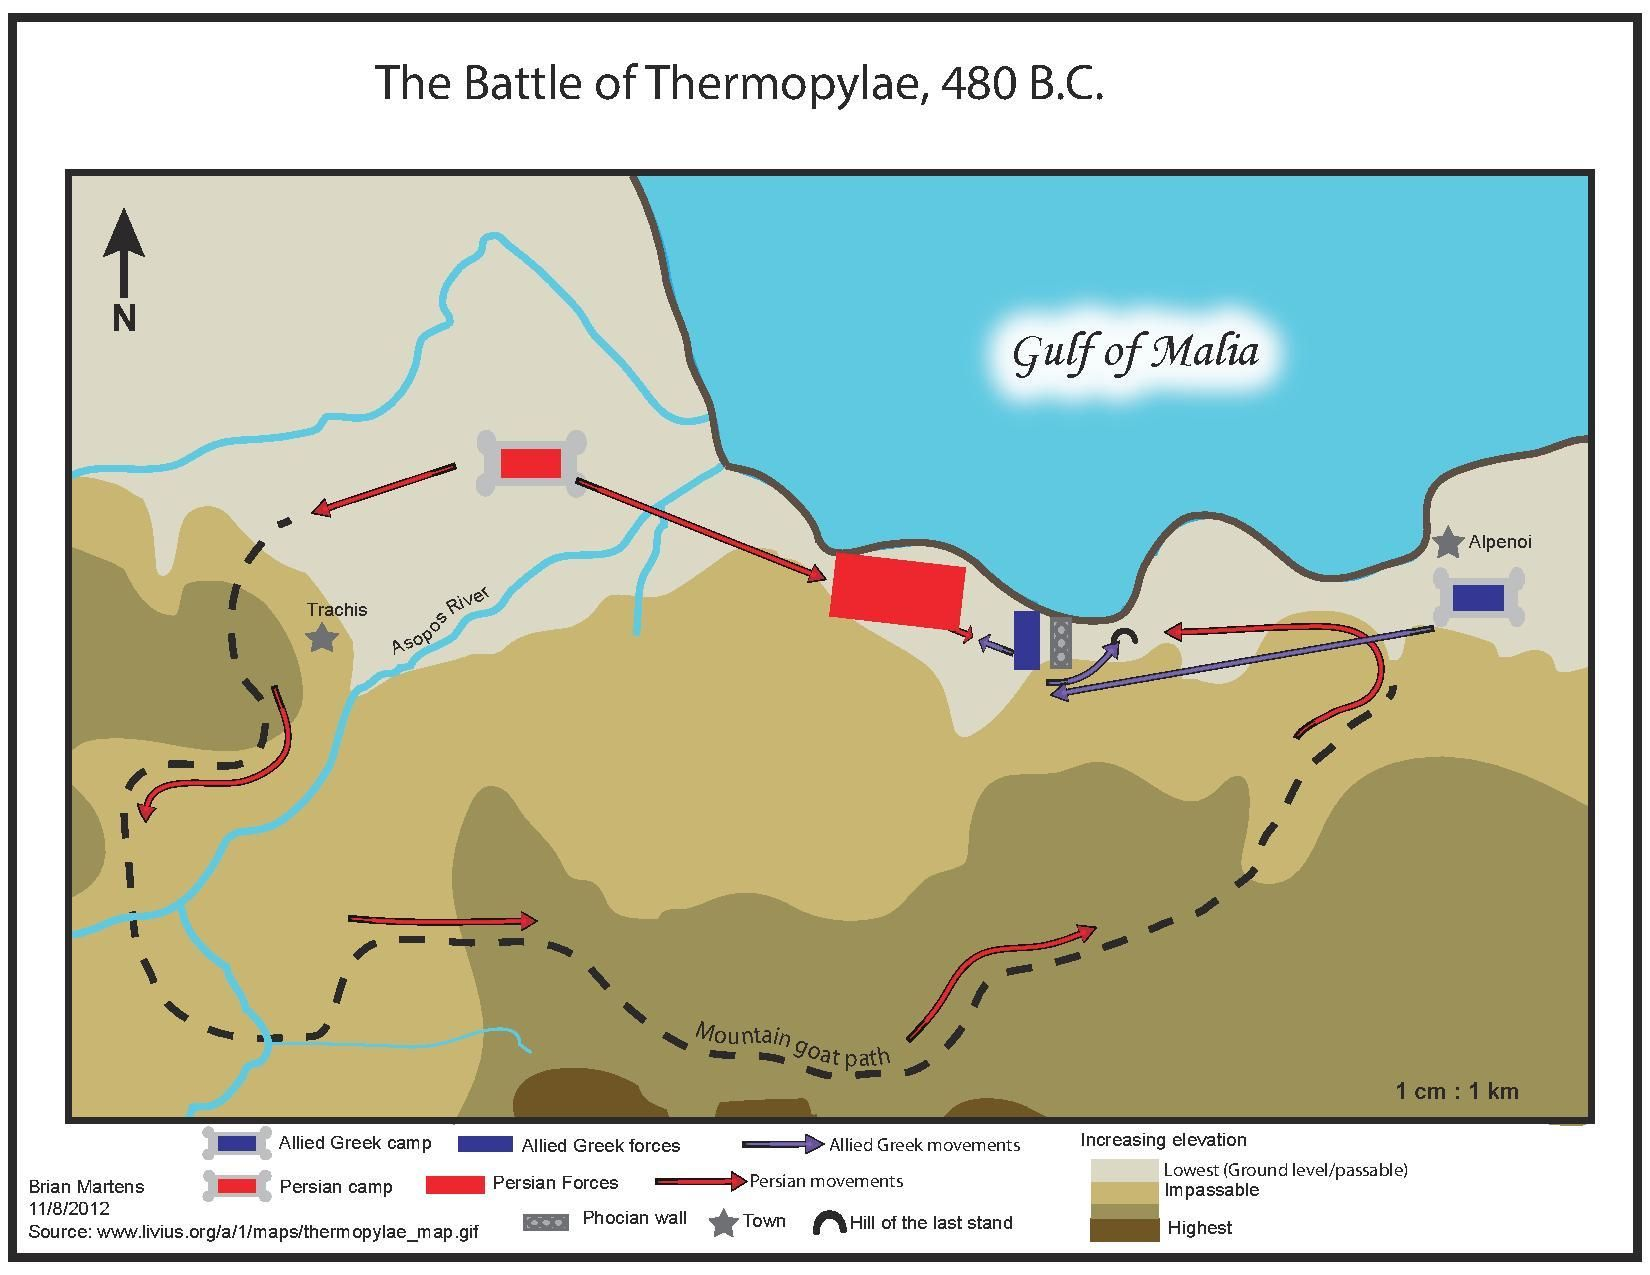 The battle of Thermopylae was between a Greek force of 7000 men and